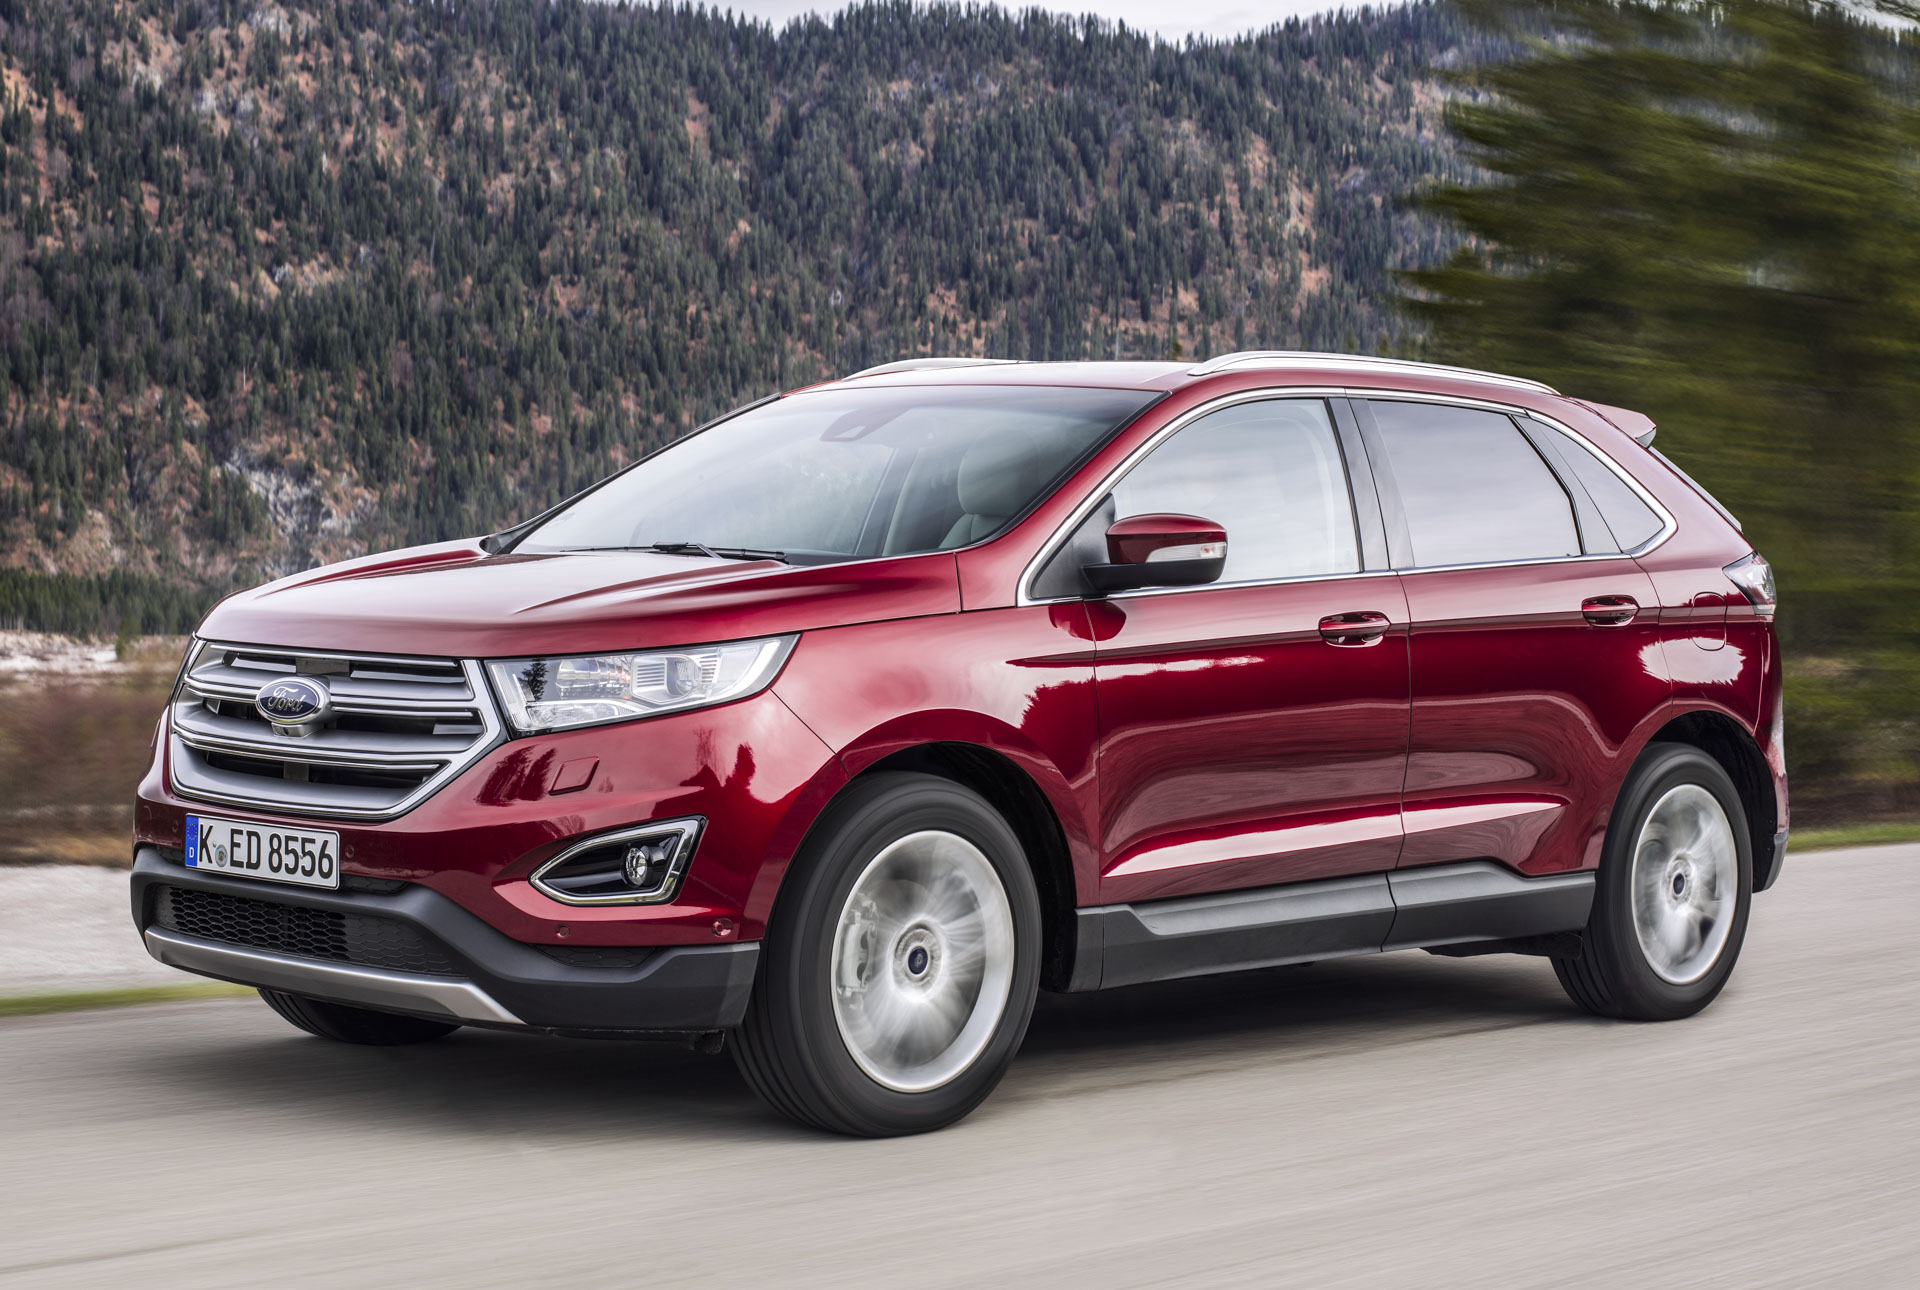 Ford Edge Motor 2017 2018 2019 Ford Price Release